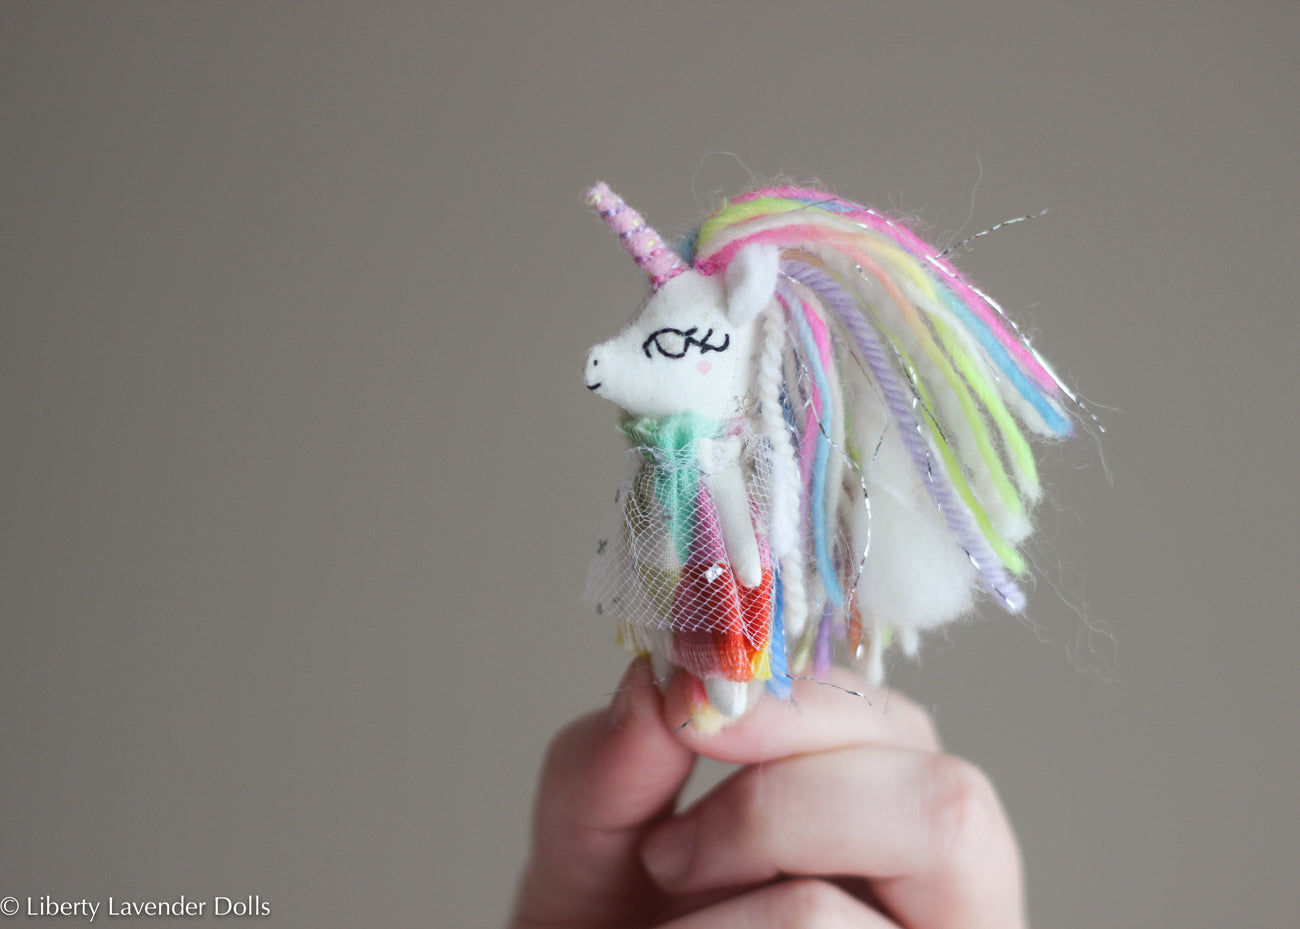 Miniature Rainbow Unicorn Pegasus, Itty bitty doll, about 2.75 inches tall